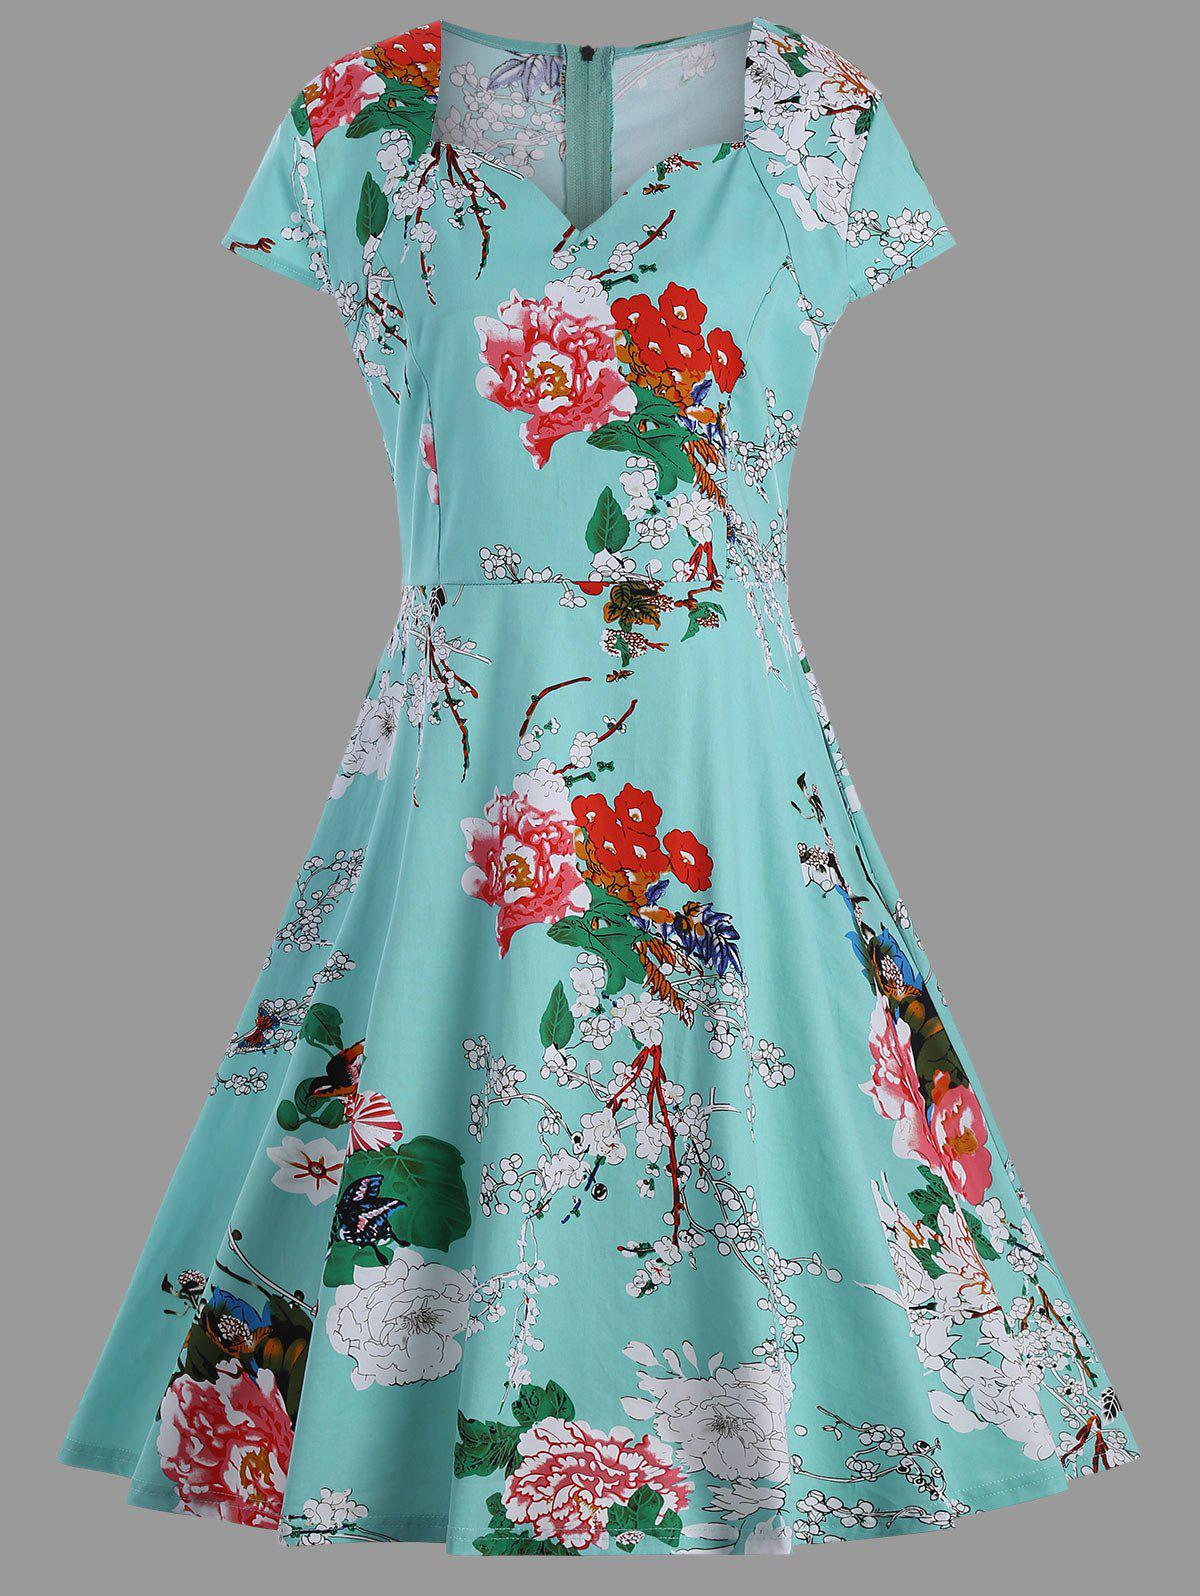 A Line Plus Size Vintage Flower DressWOMEN<br><br>Size: 8XL; Color: GREEN; Style: Vintage; Material: Polyester; Silhouette: A-Line; Dresses Length: Mid-Calf; Neckline: Sweetheart Neck; Sleeve Type: Cap Sleeve; Sleeve Length: Short Sleeves; Pattern Type: Floral; With Belt: No; Season: Summer; Weight: 0.4500kg; Package Contents: 1 x Dress;